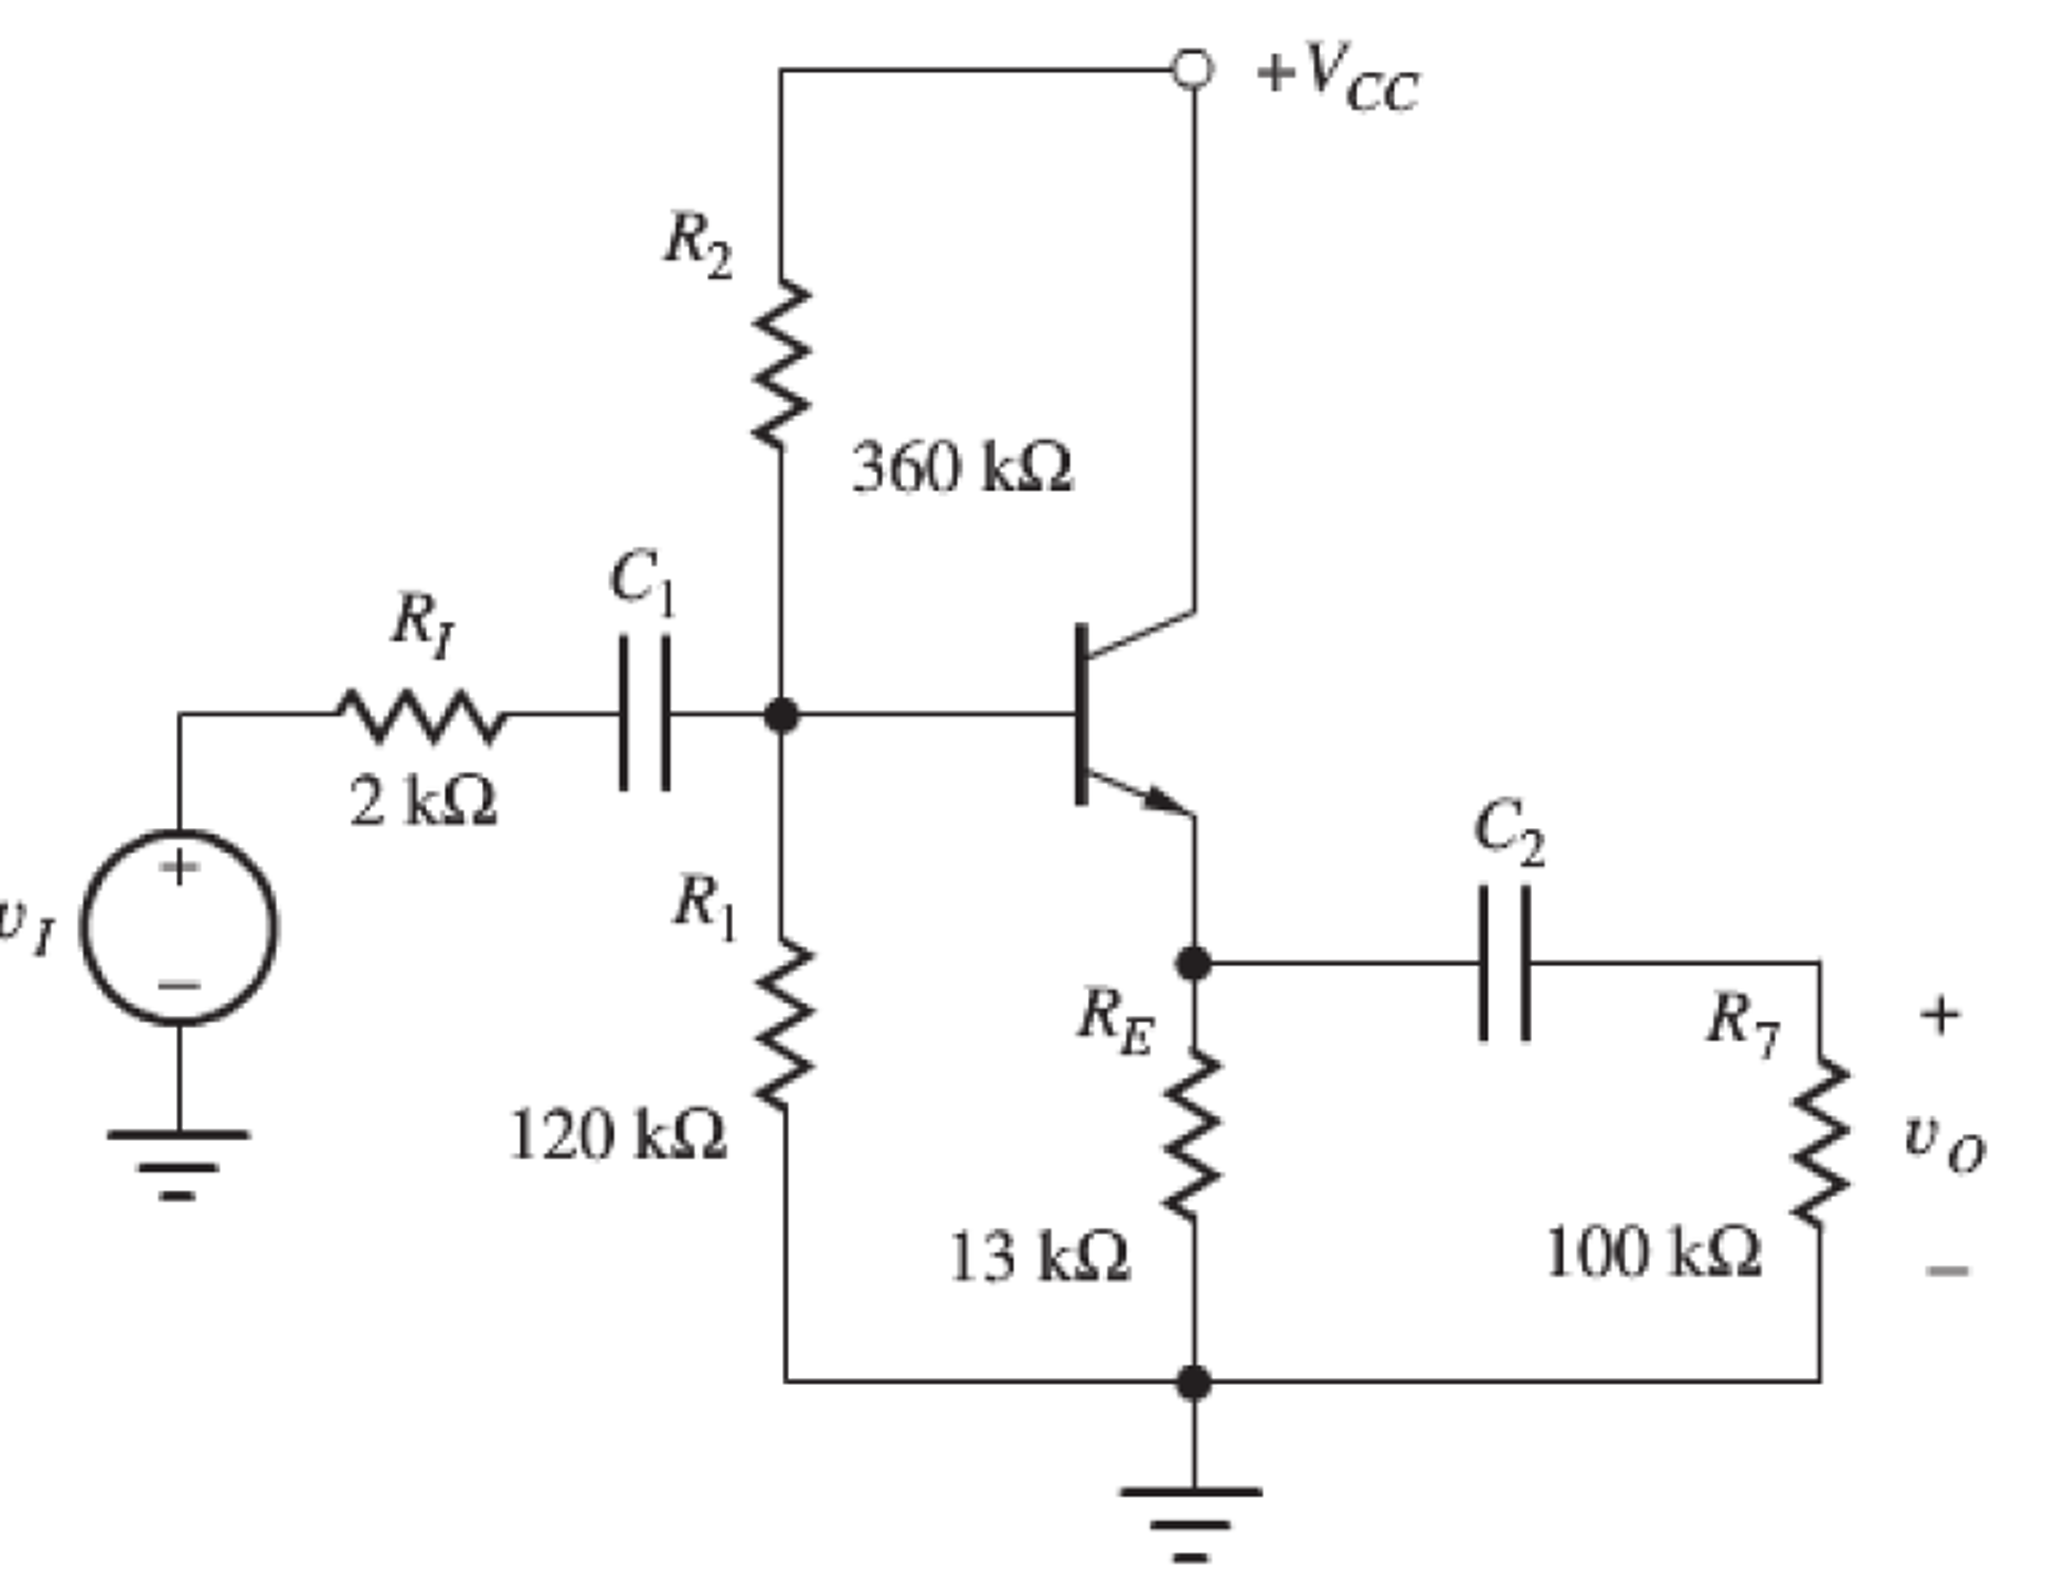 solved  for a bjt amplifier shown below  1  draw a dc equi